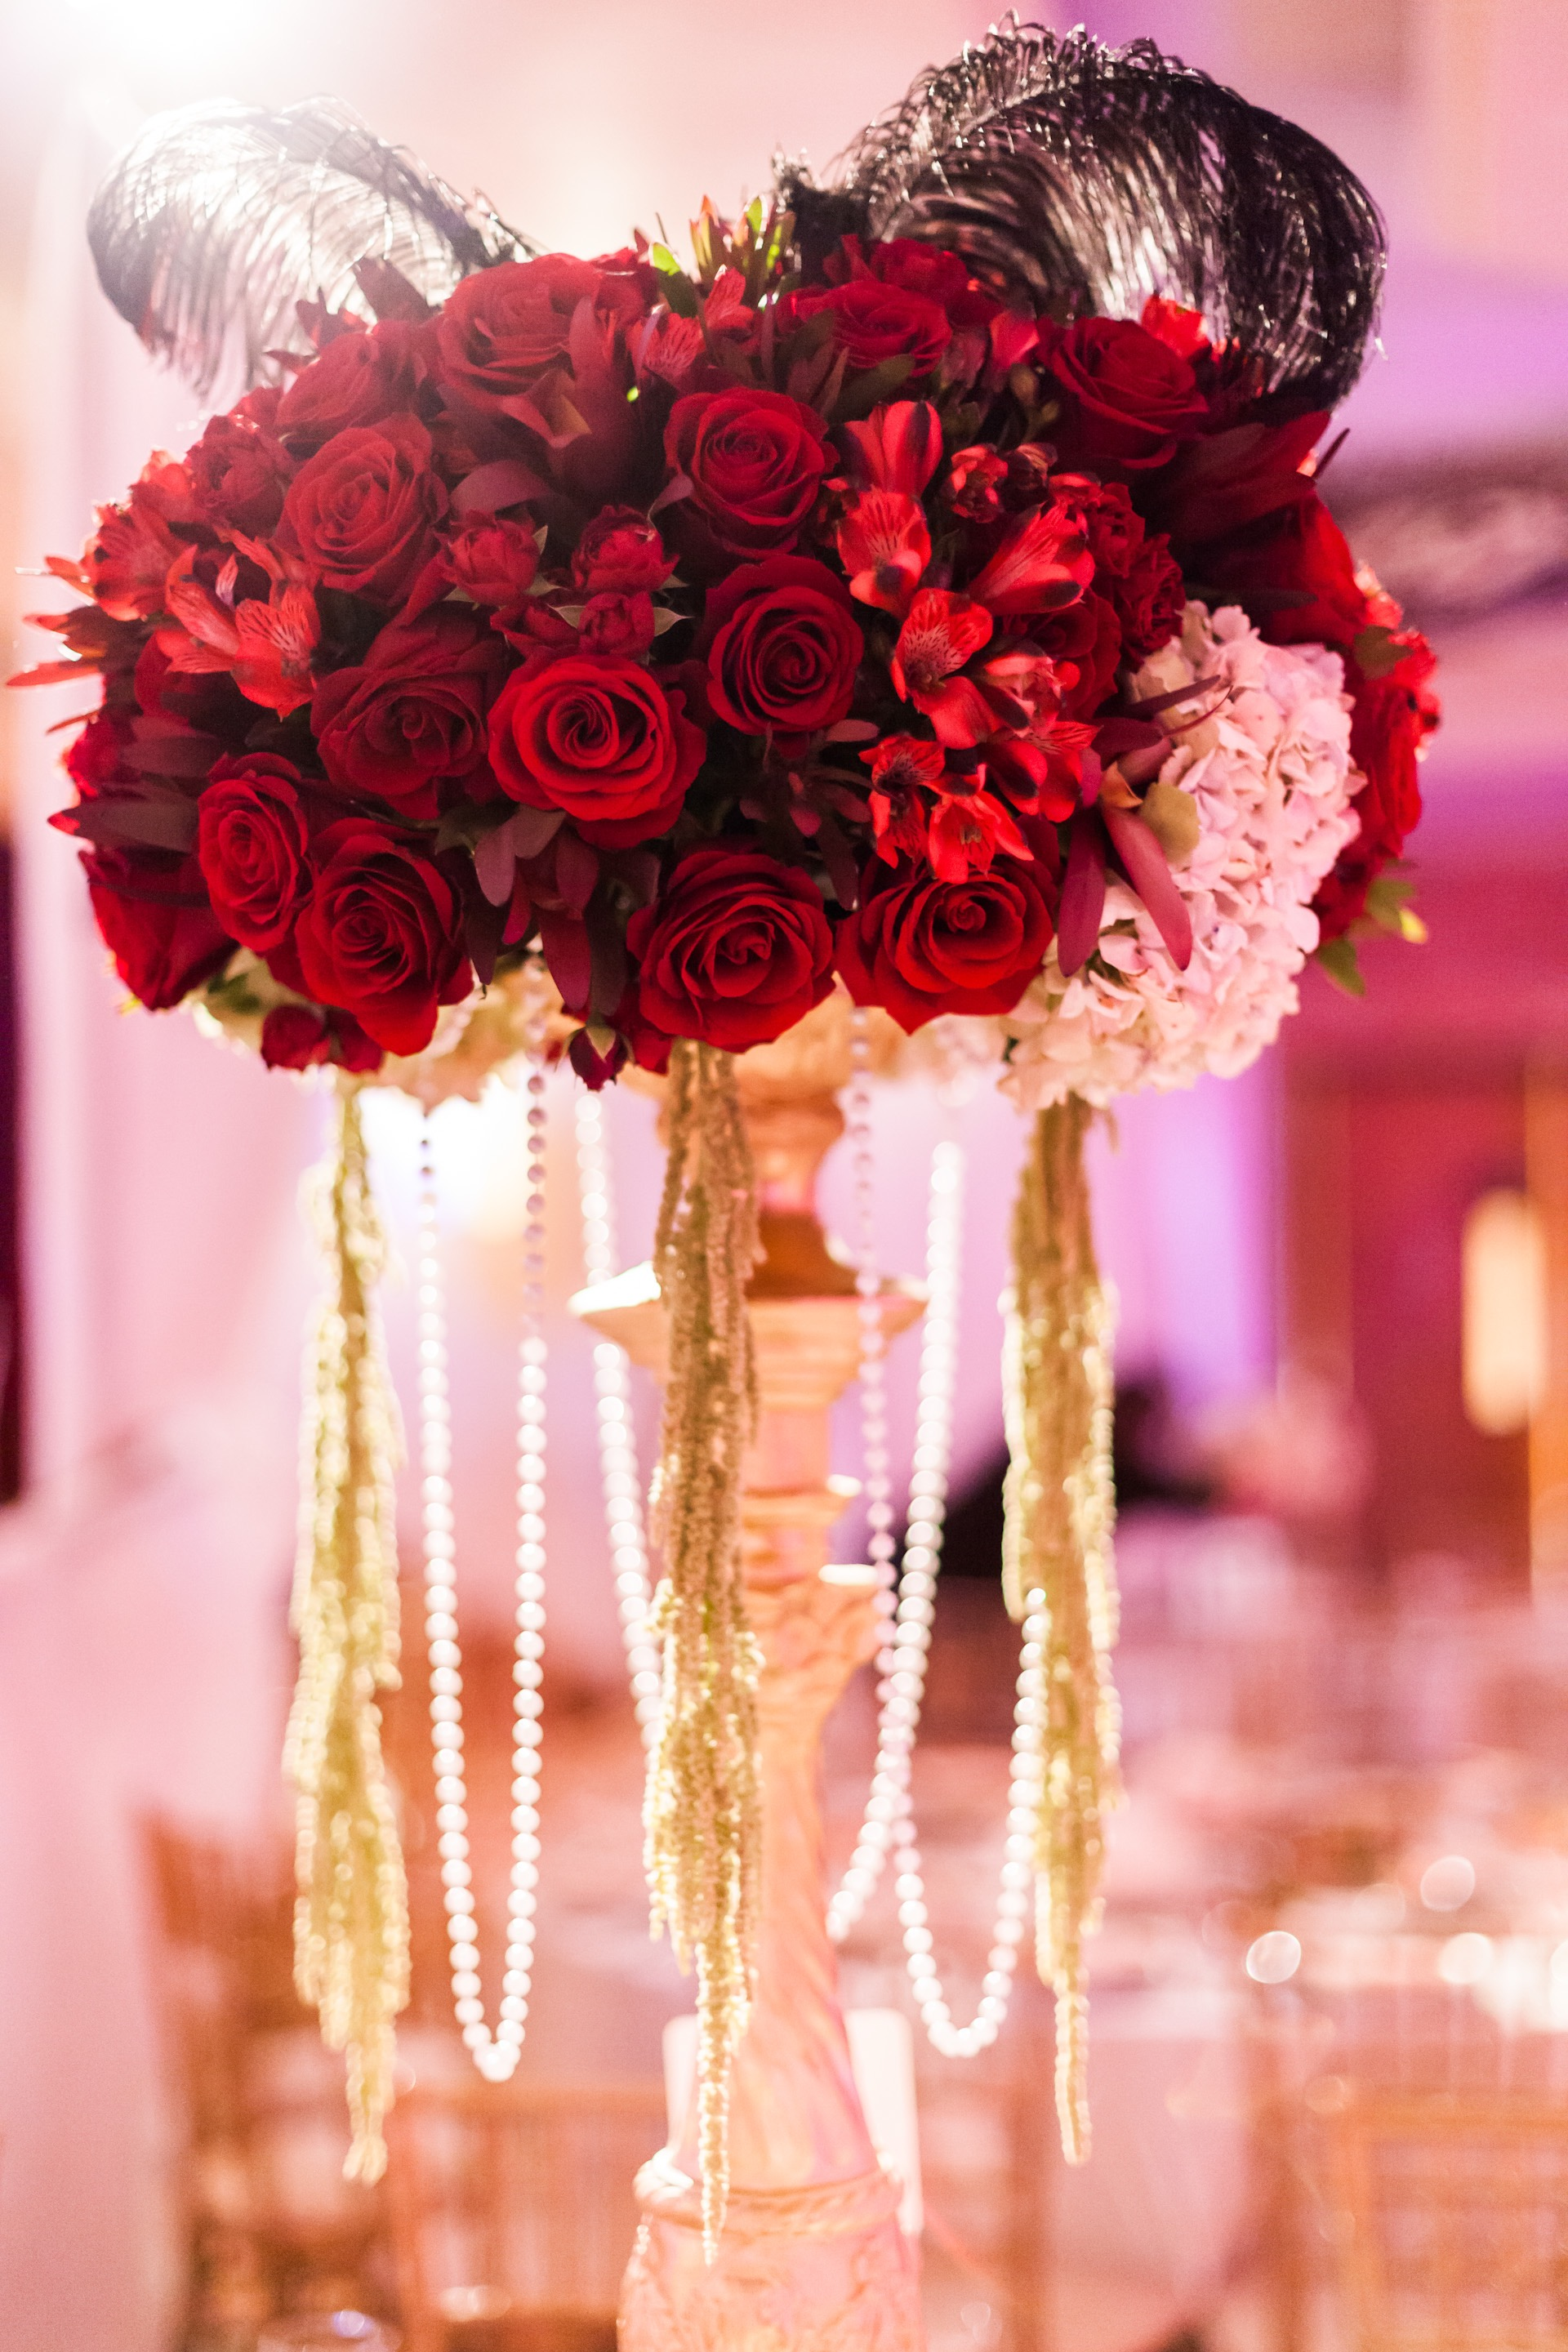 Red Theme Rose Centerpieces For Weddings (Image 12 of 15)